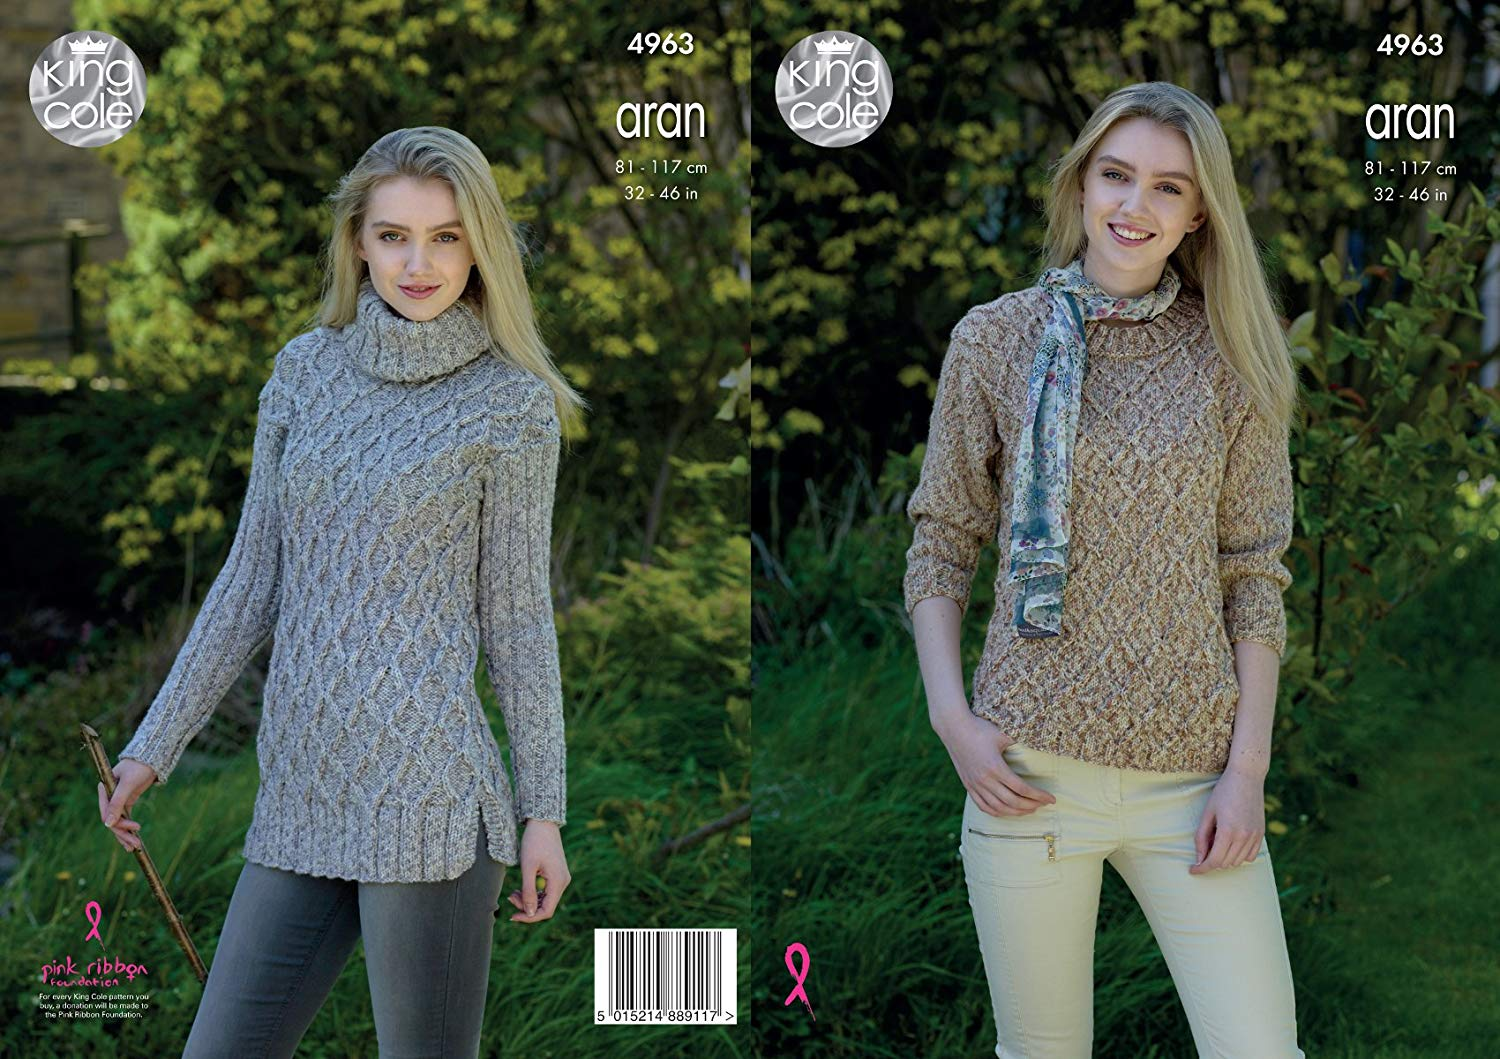 f777610a0 Get Quotations · King Cole Ladies Aran Knitting Pattern Womens Round or Polo  Neck Cable Knit Sweater (4963